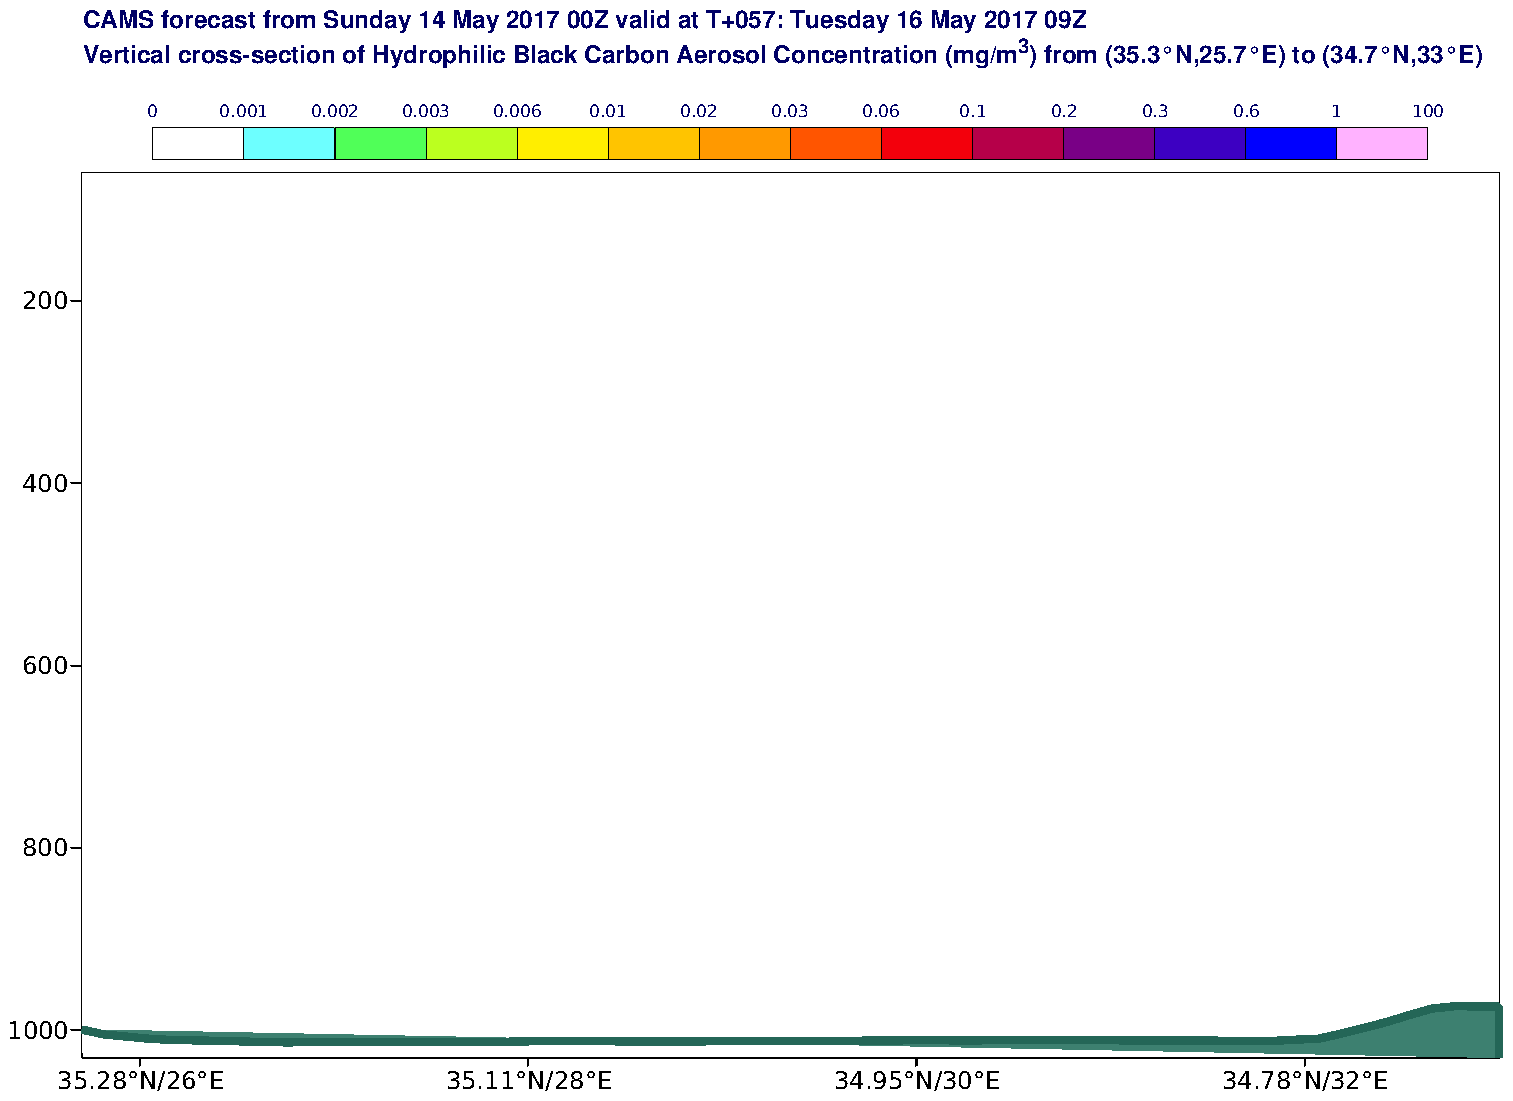 Vertical cross-section of Hydrophilic Black Carbon Aerosol Concentration (mg/m3) valid at T57 - 2017-05-16 09:00